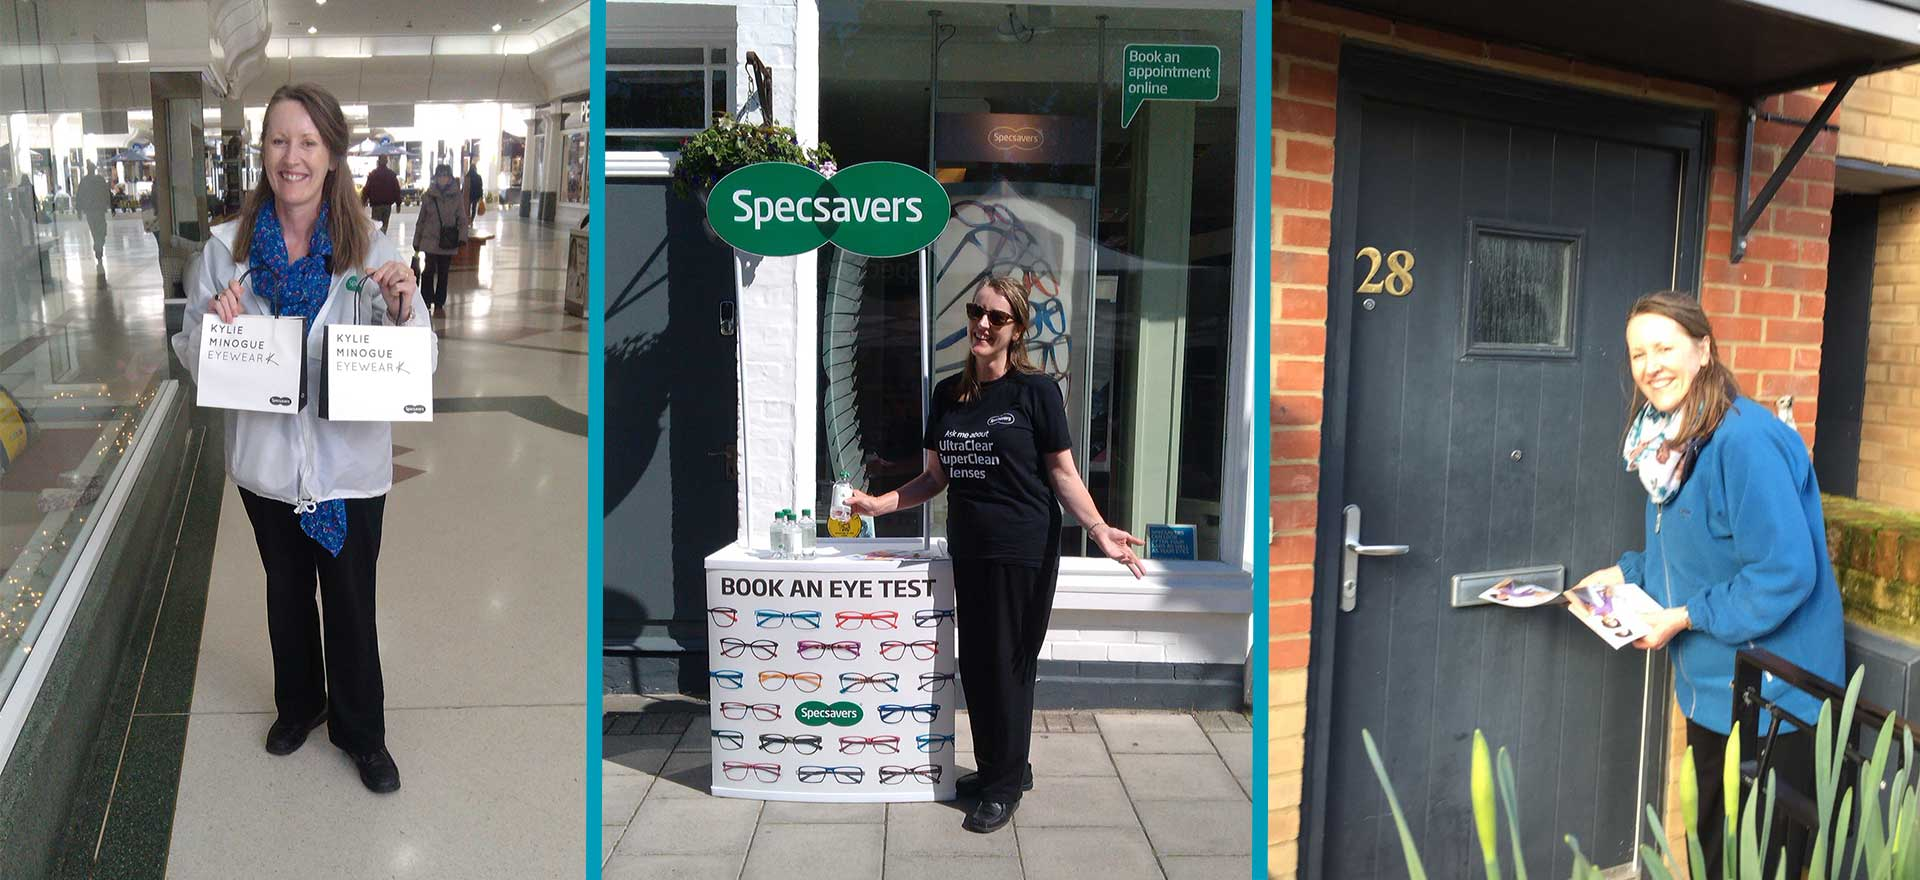 Specsavers promotional staff